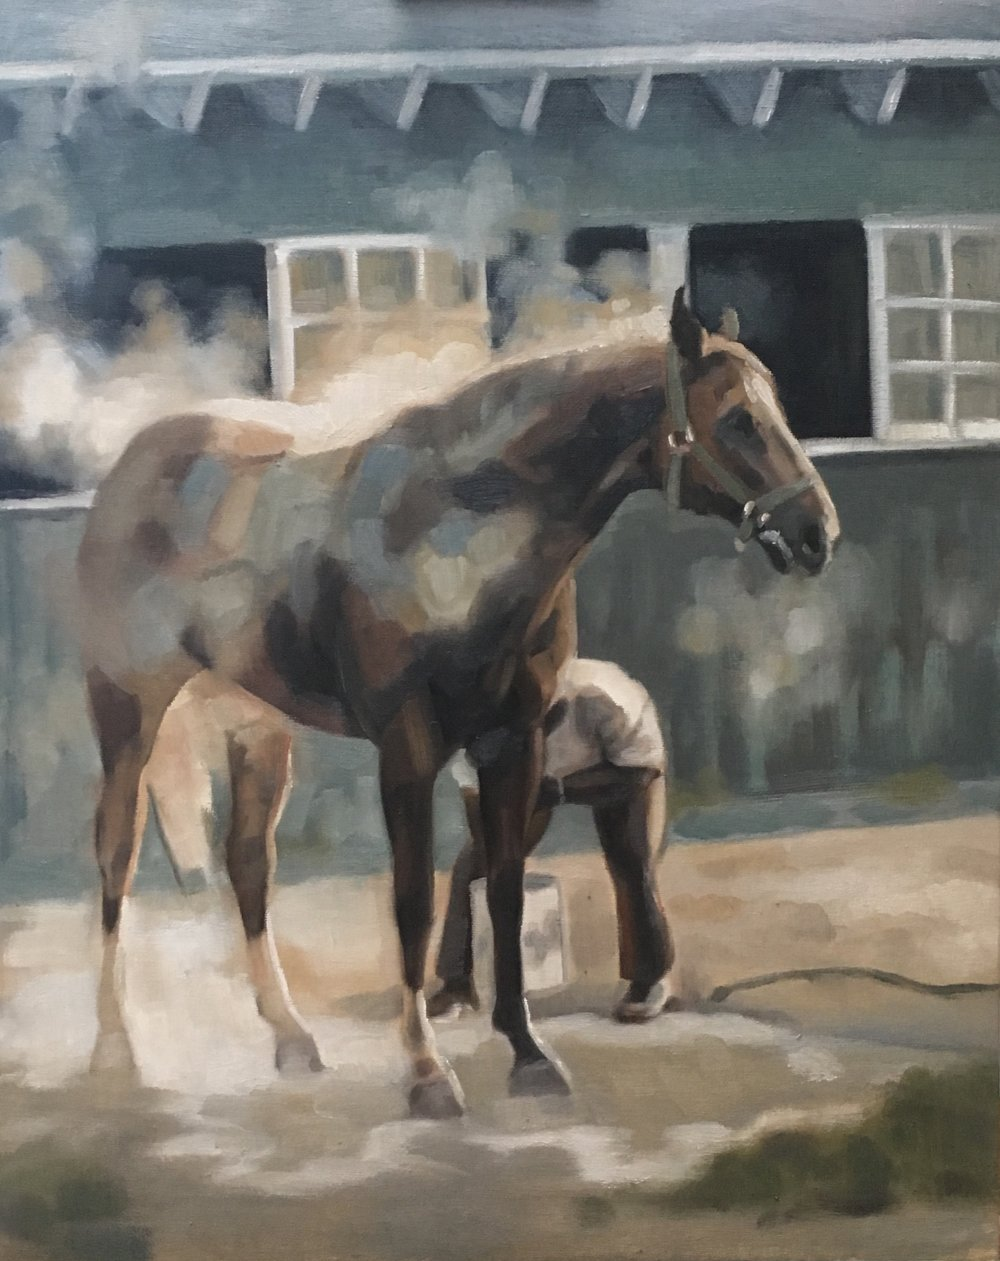 Washing off a hot horse. Oil on board